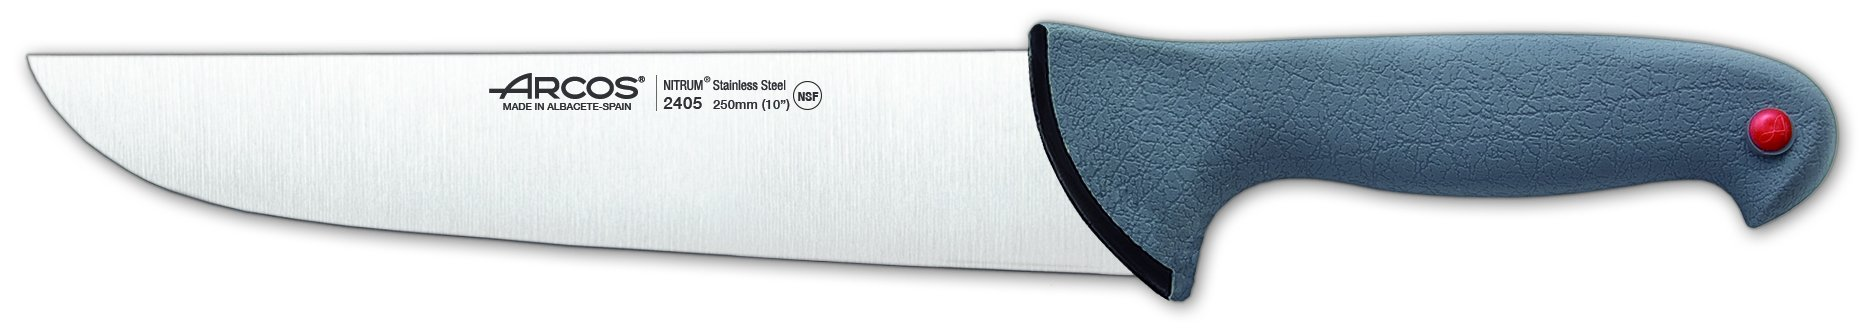 Arcos 10-Inch 250 mm Colour-Prof Butcher Knife by ARCOS